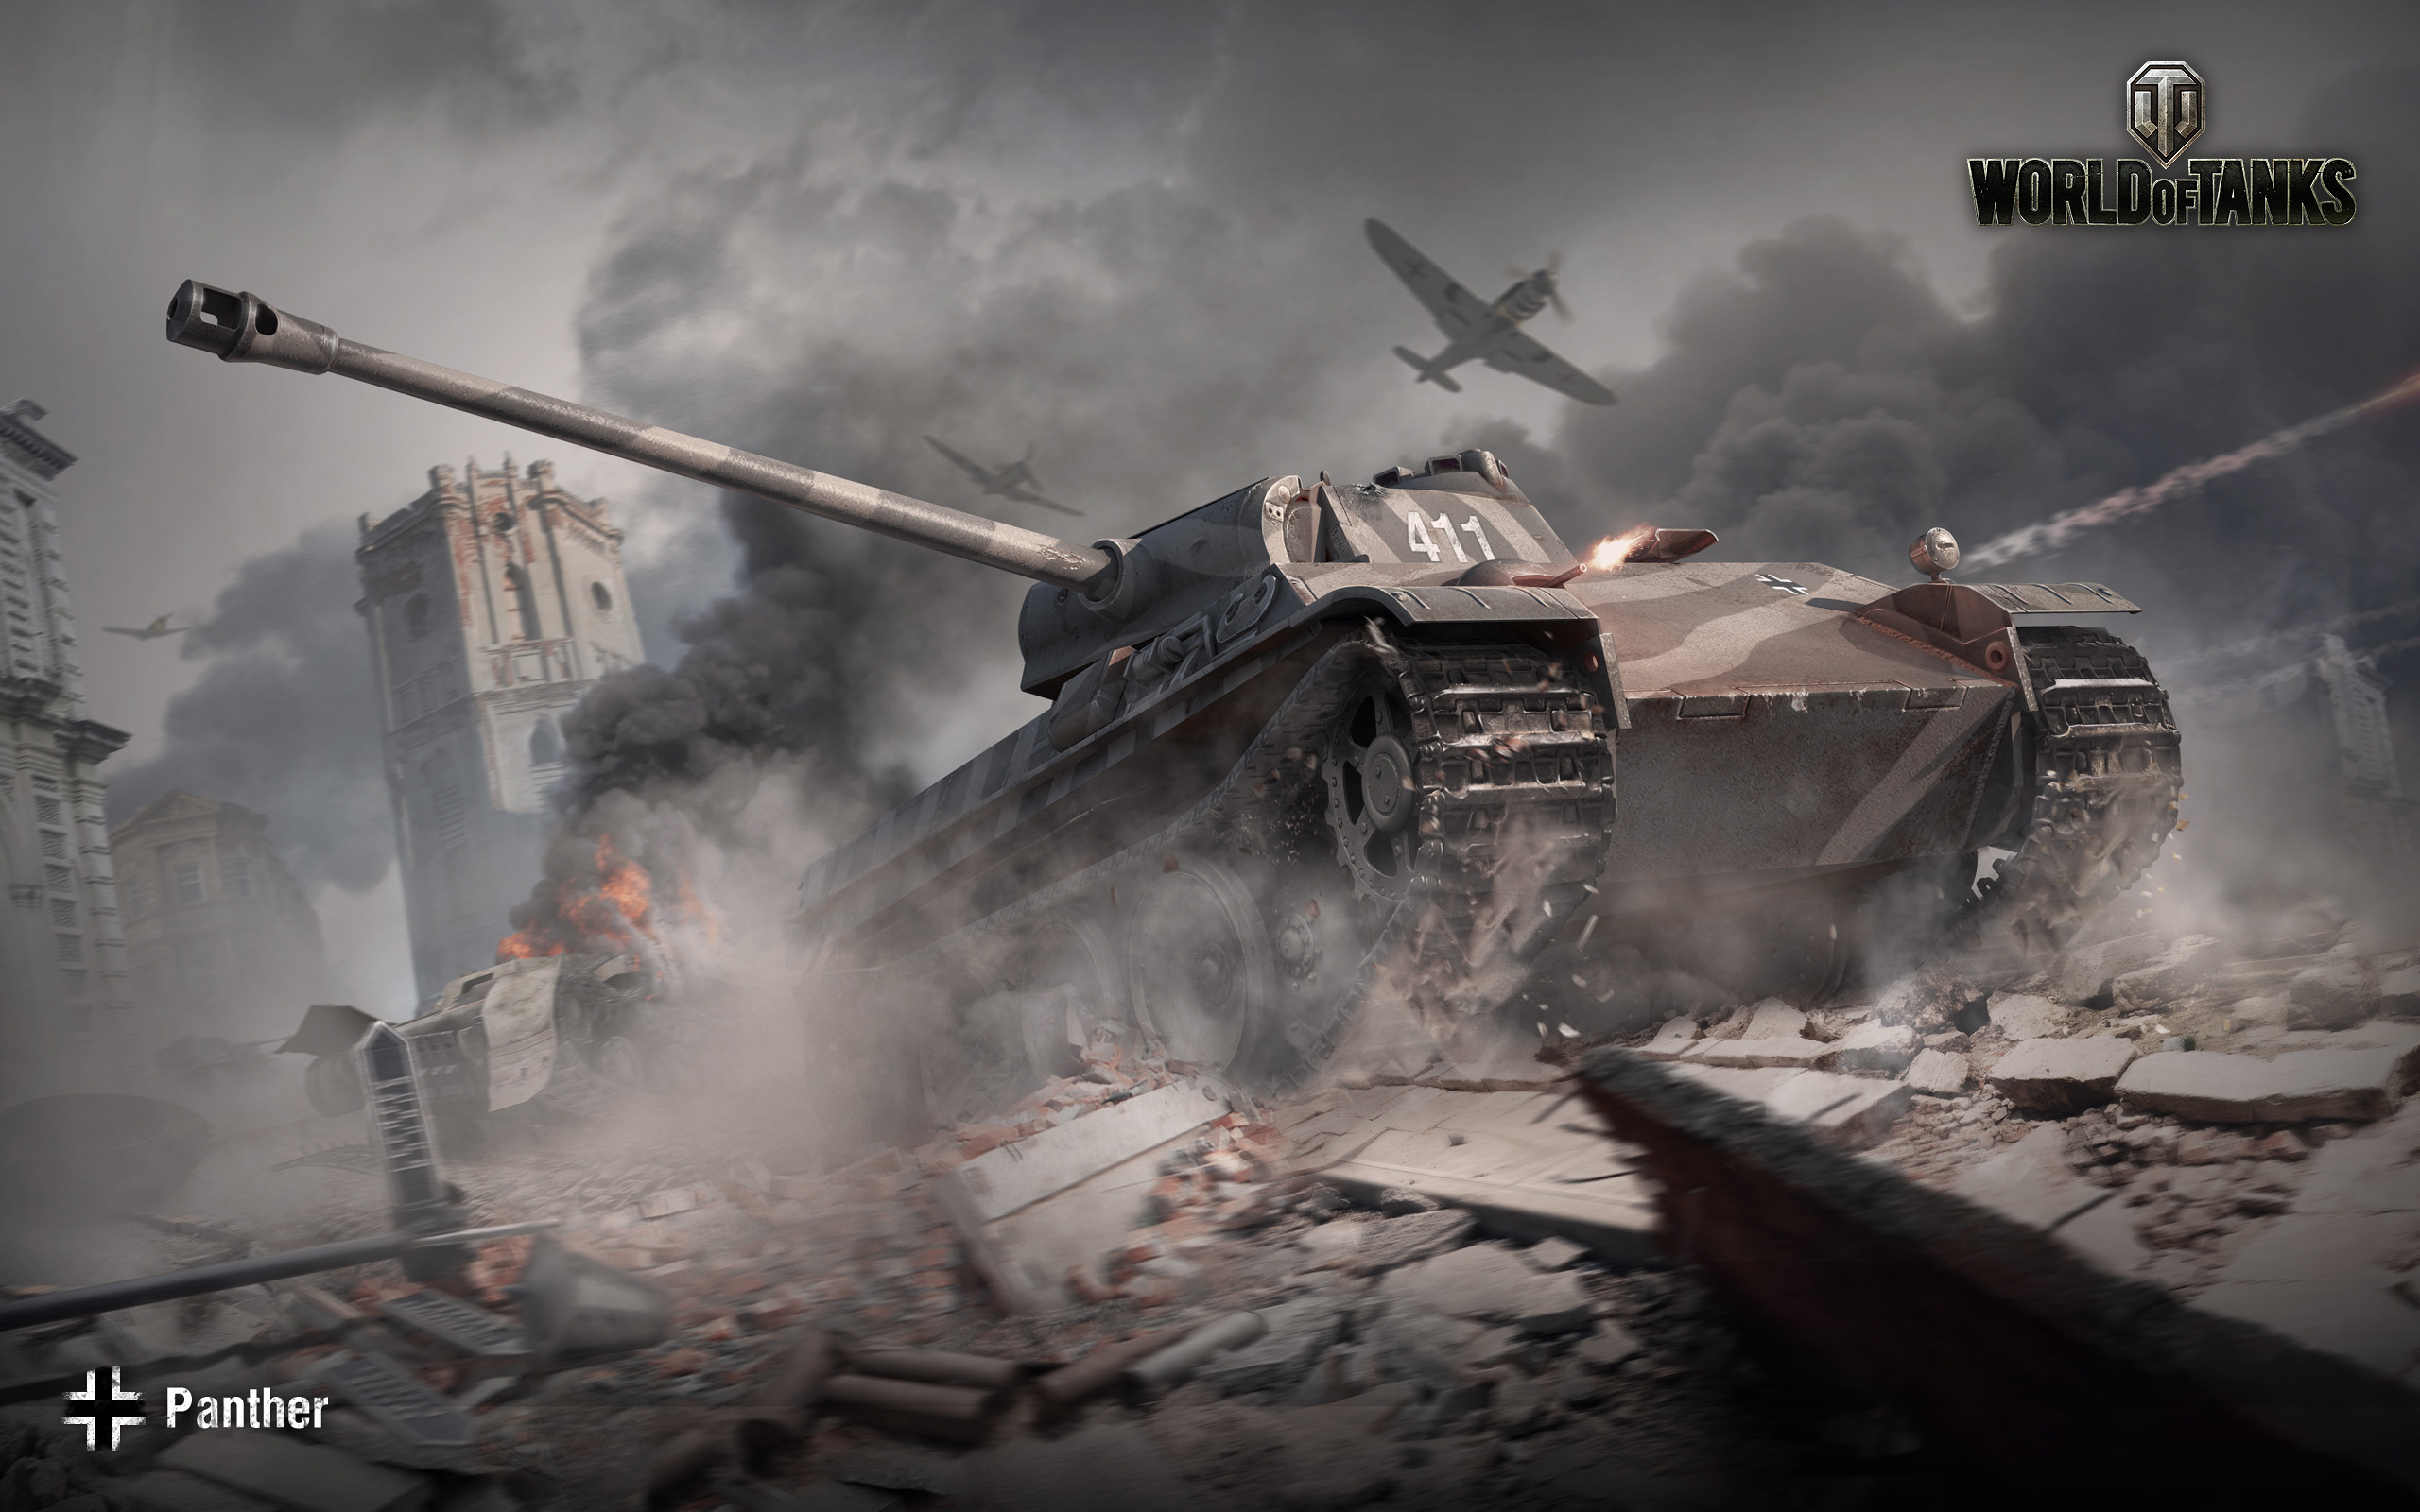 HD Wallpapers Panther World of Tanks